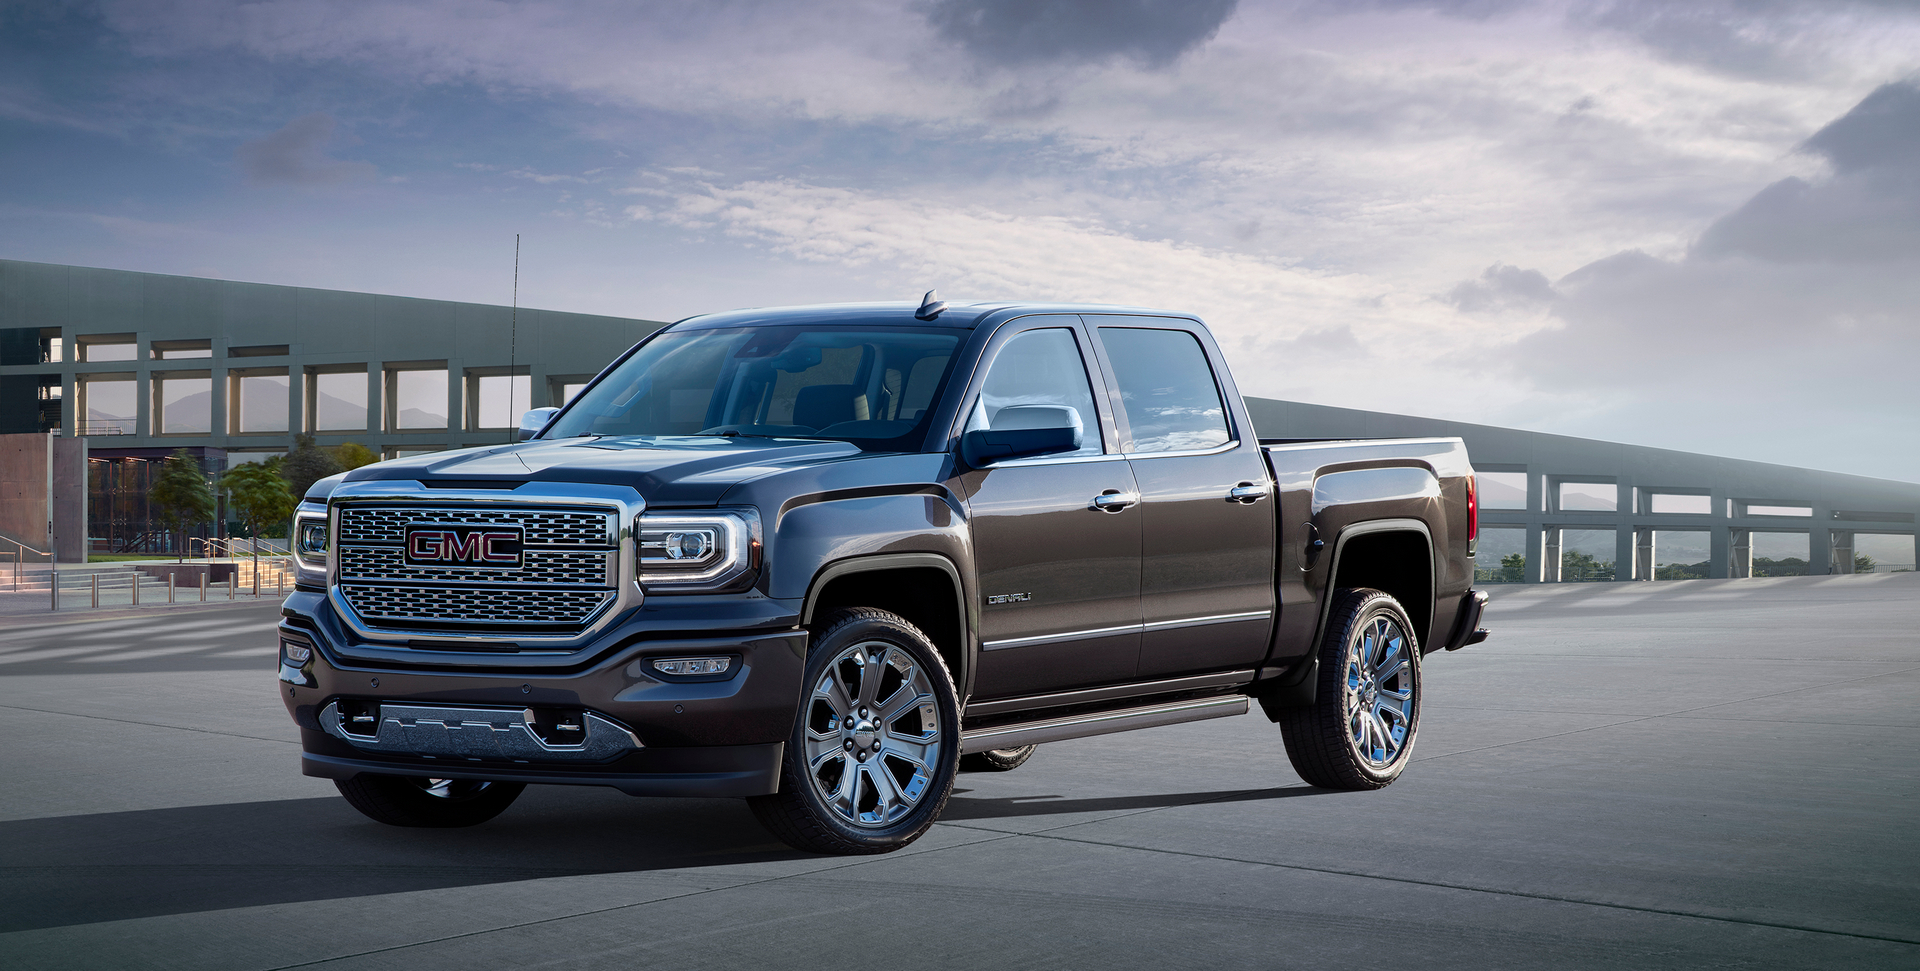 2016 Gmc Sierra Denali Ultimate General Motors